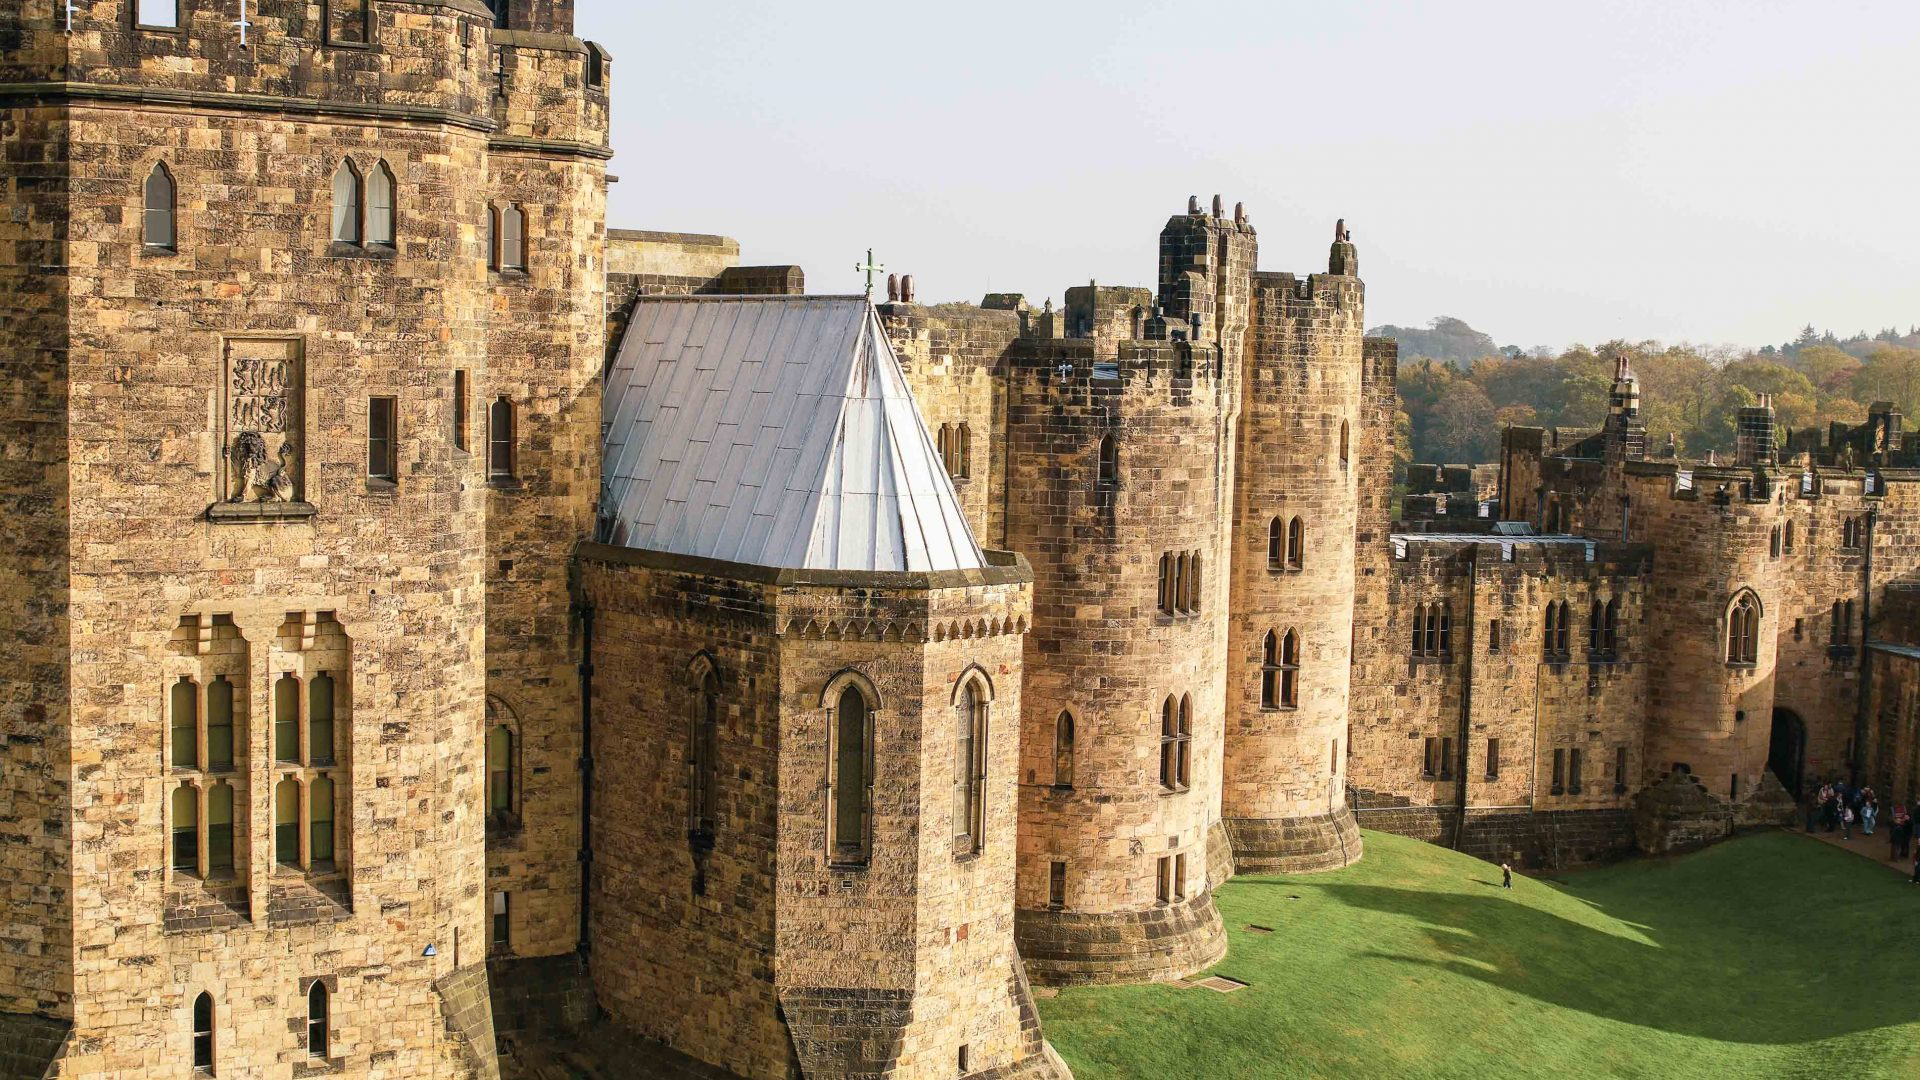 Alnwick Castle, Northumberland which features as Hogwarts in the Harry Potter films.